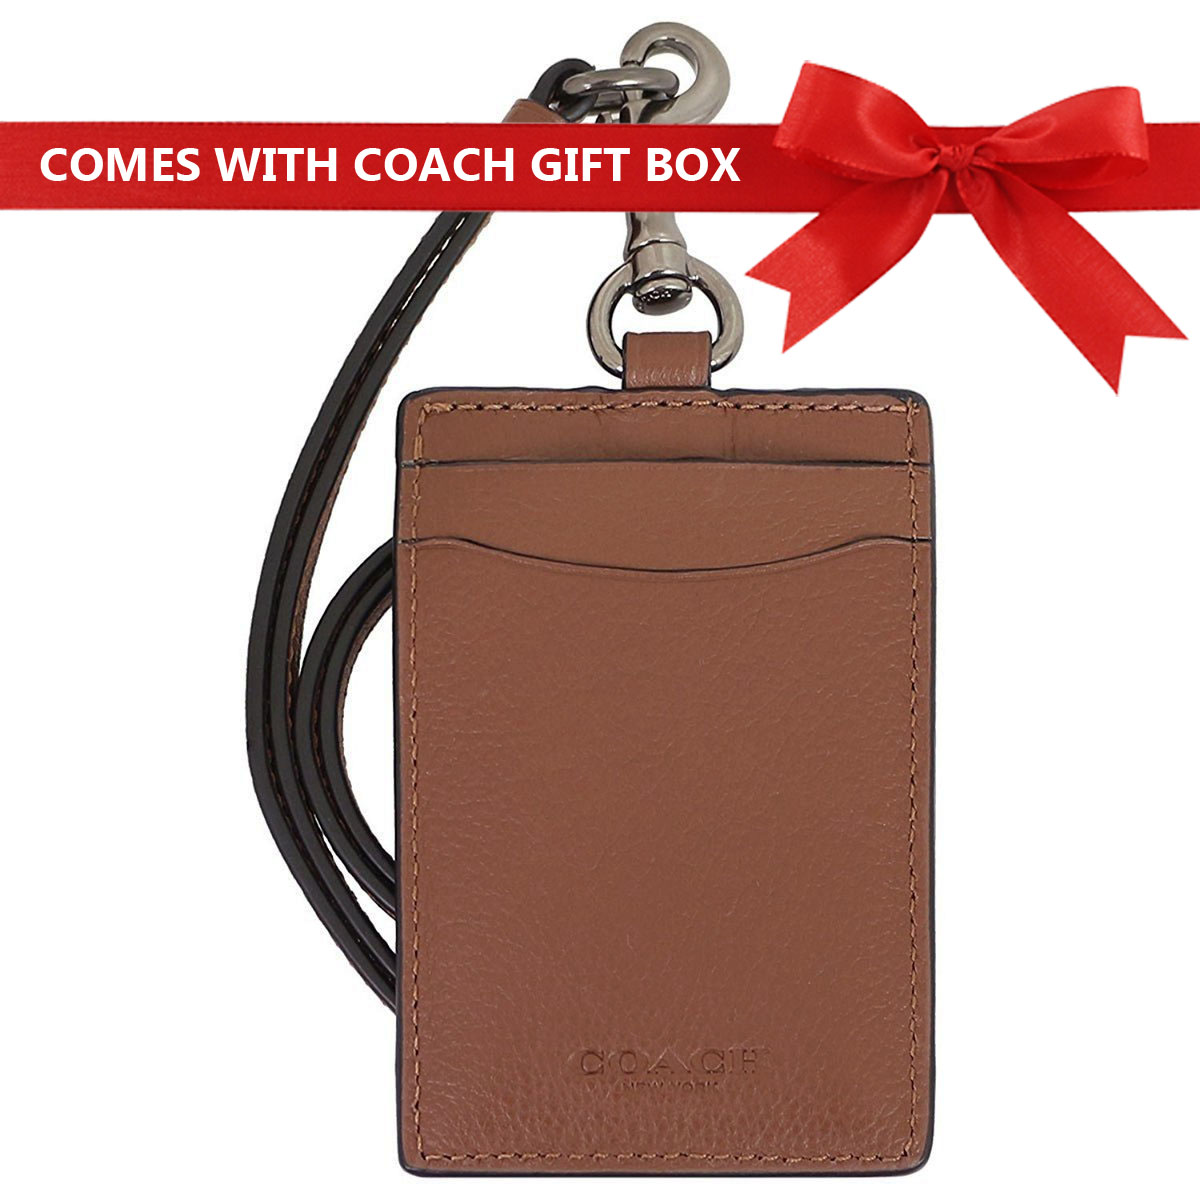 Coach Men Lanyard In Gift Box Id Lanyard In Sport Calf Leather Saddle Brown / Antique Nickel # F31657